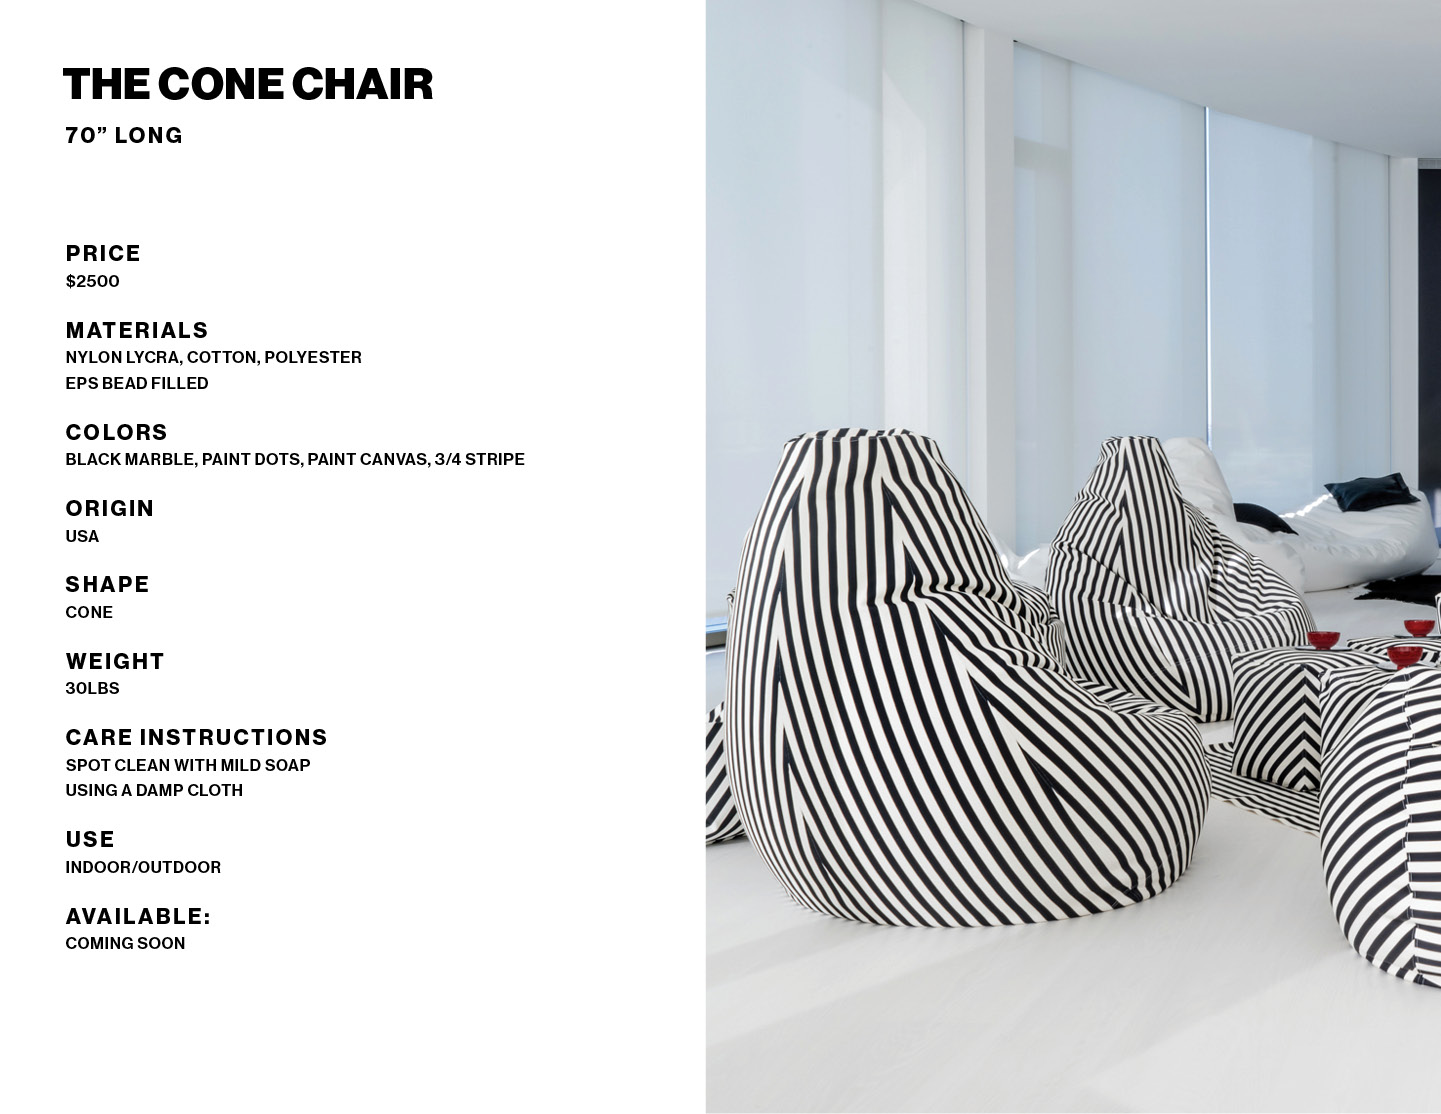 The Cone Chair product info